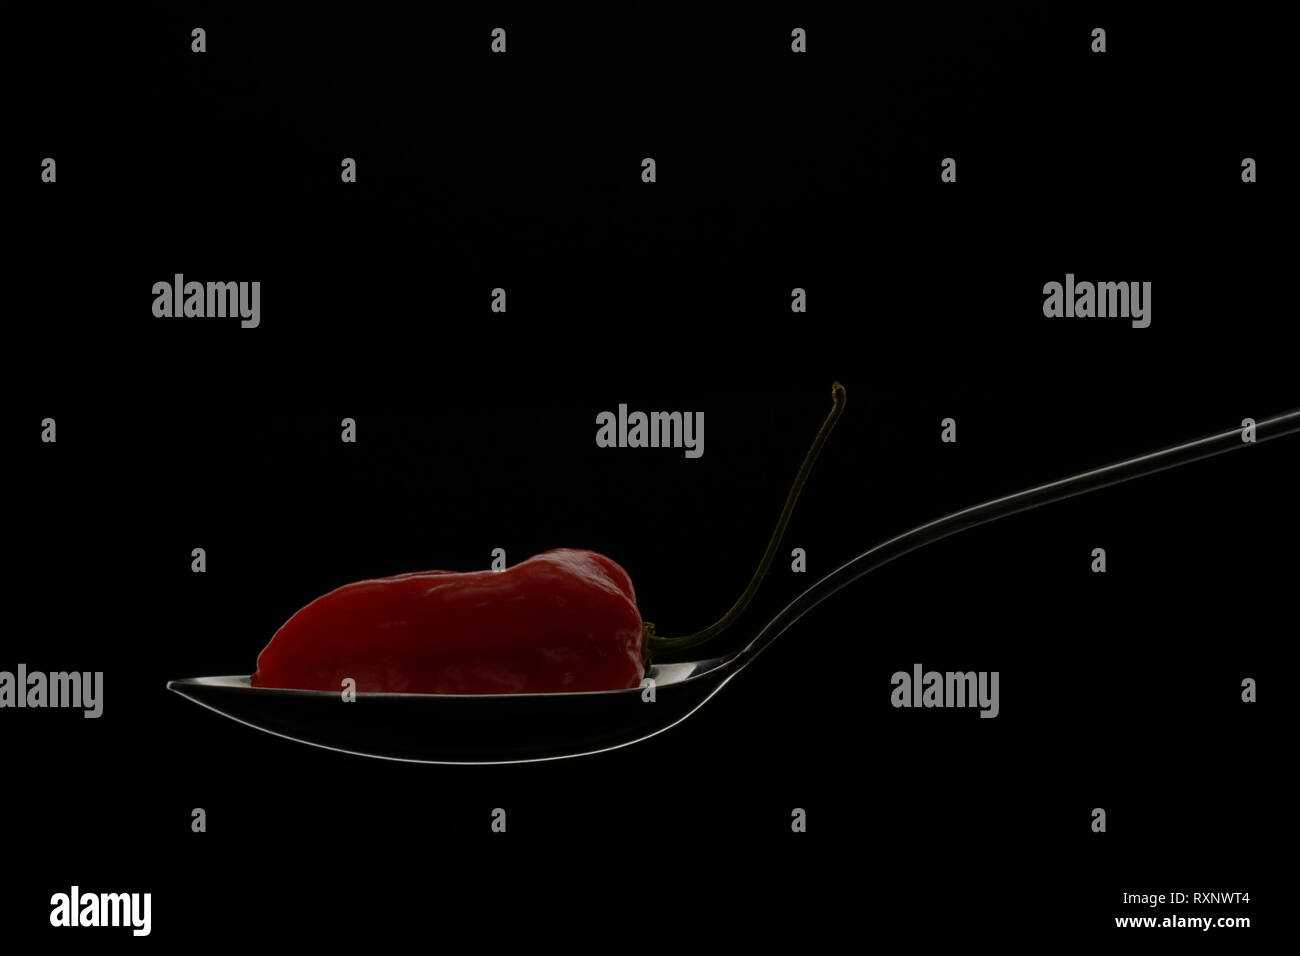 Isolated single Komodo dragon red hot pepper positioned on outlined in glowing light spoon on black background,modern food cooking concept. - Stock Image